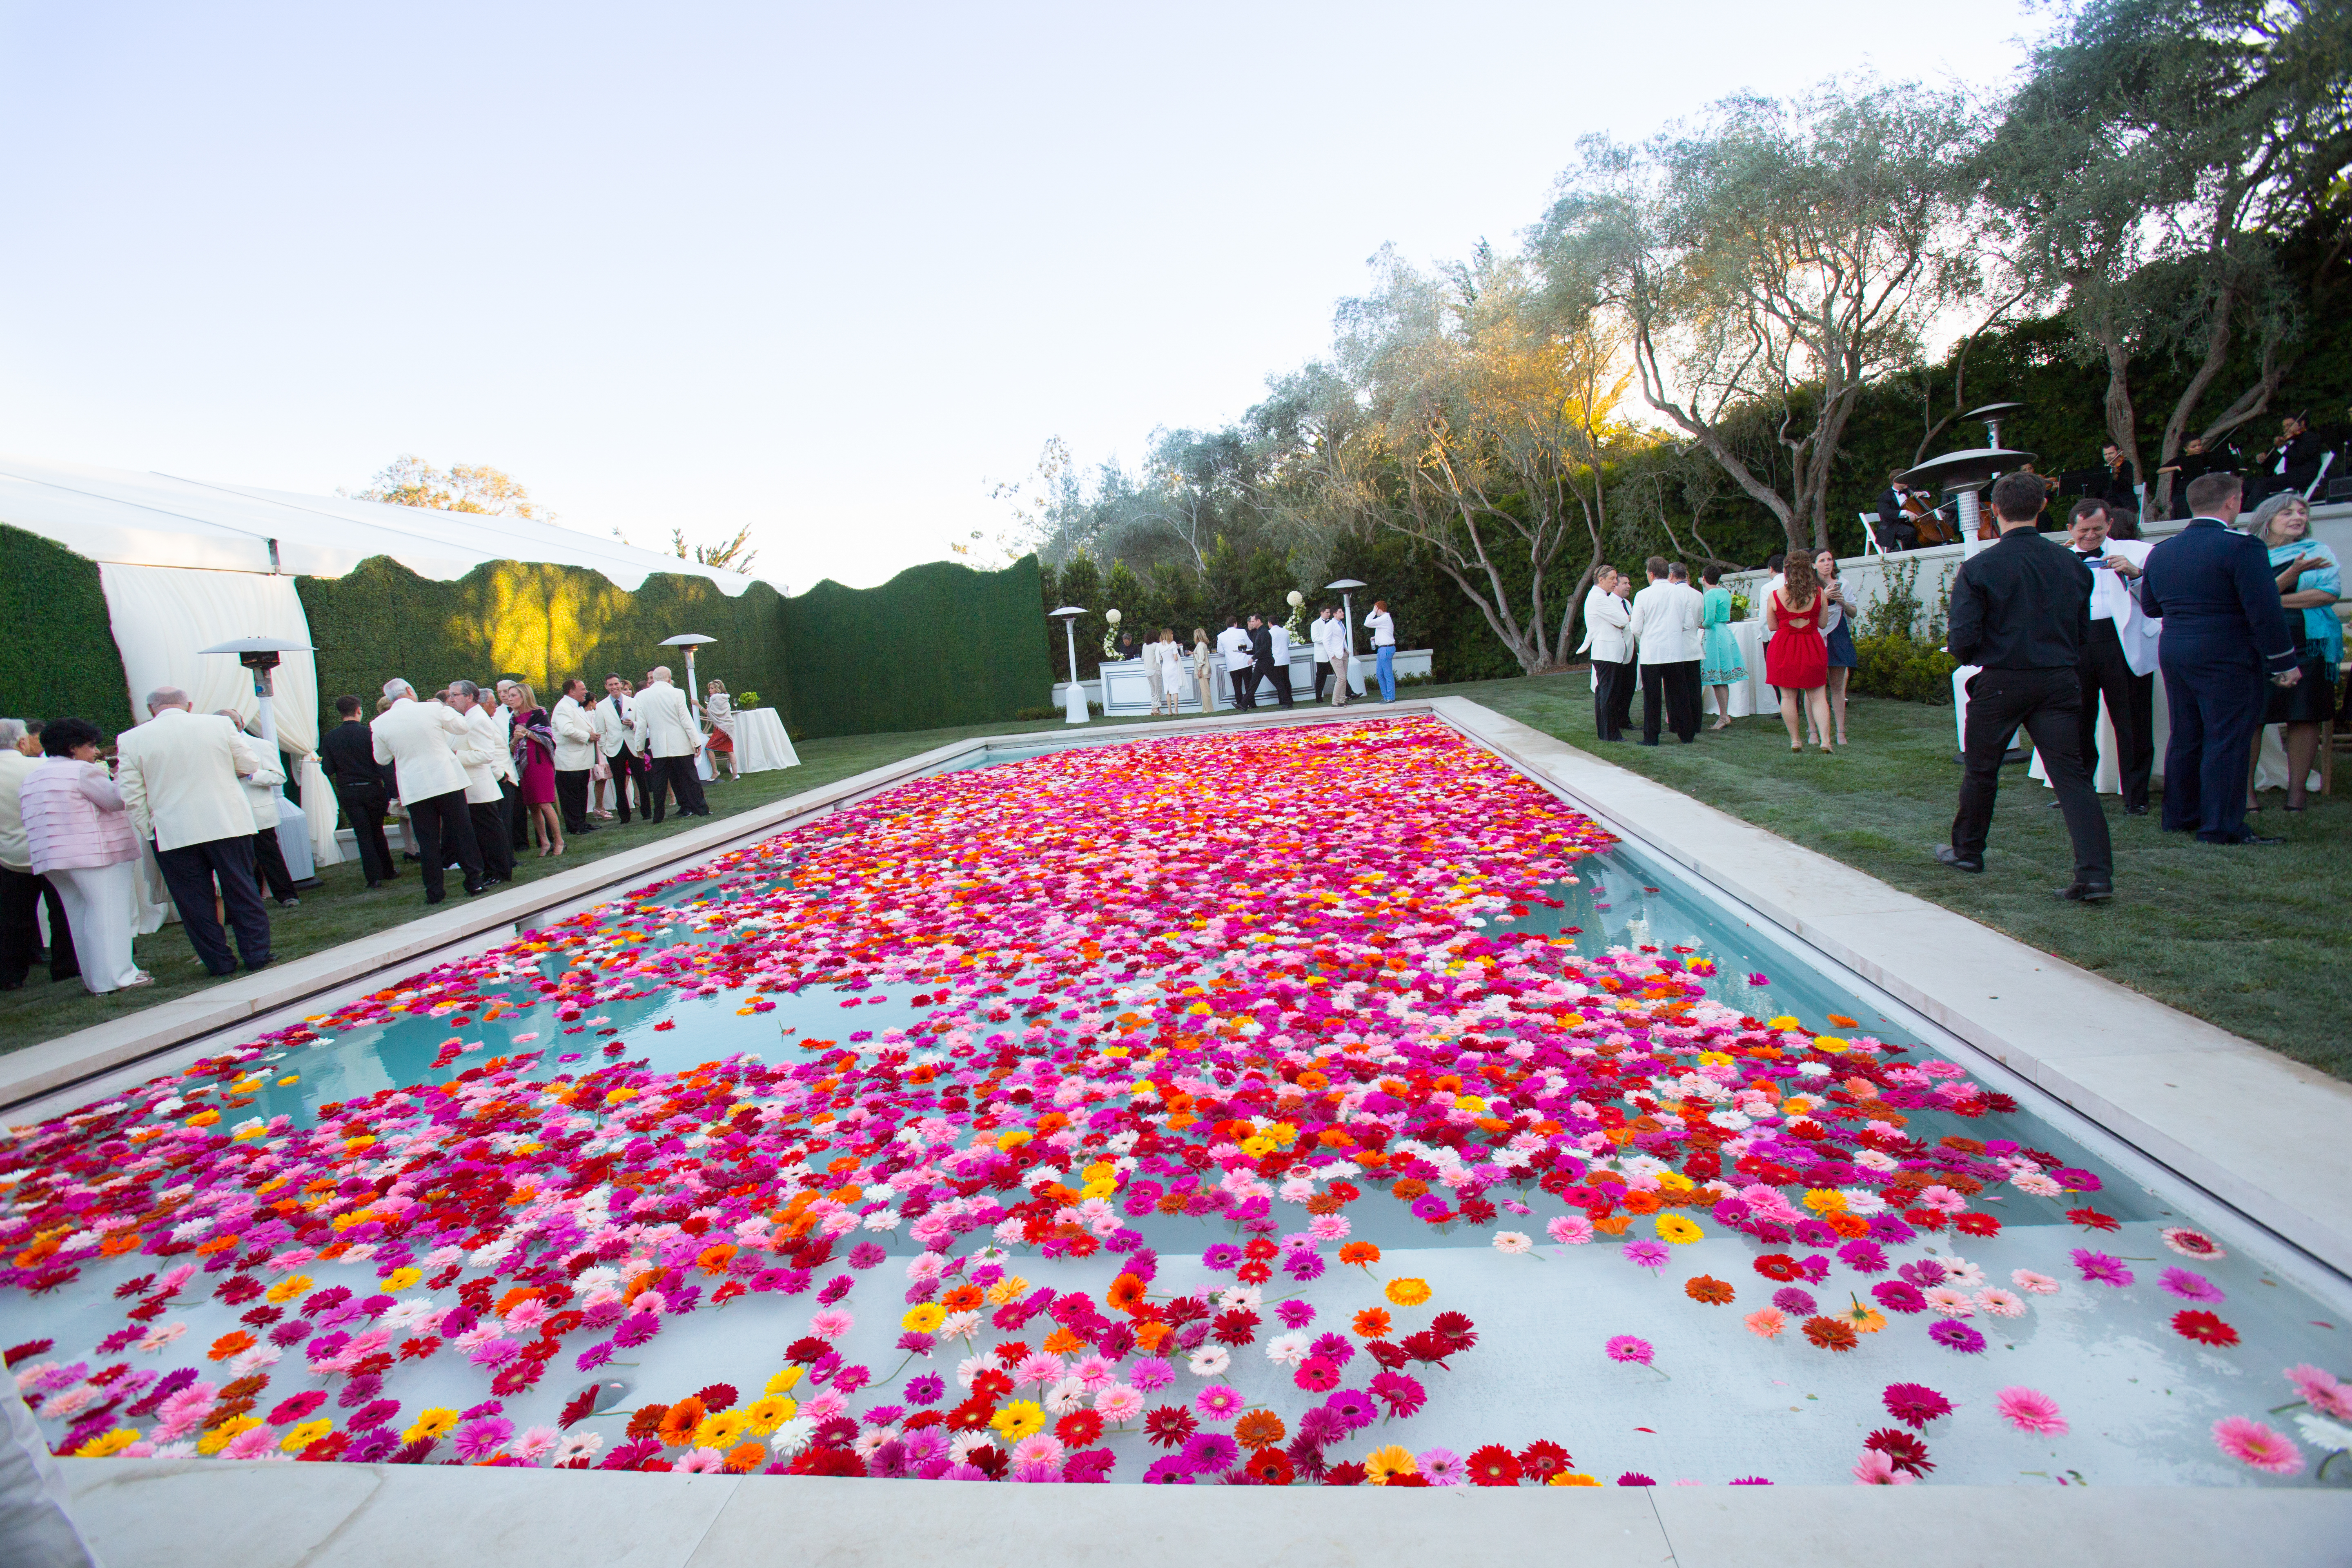 MILESTONE BIRTHDAY CELEBRATION - Montecito - Paulette Wolf Events